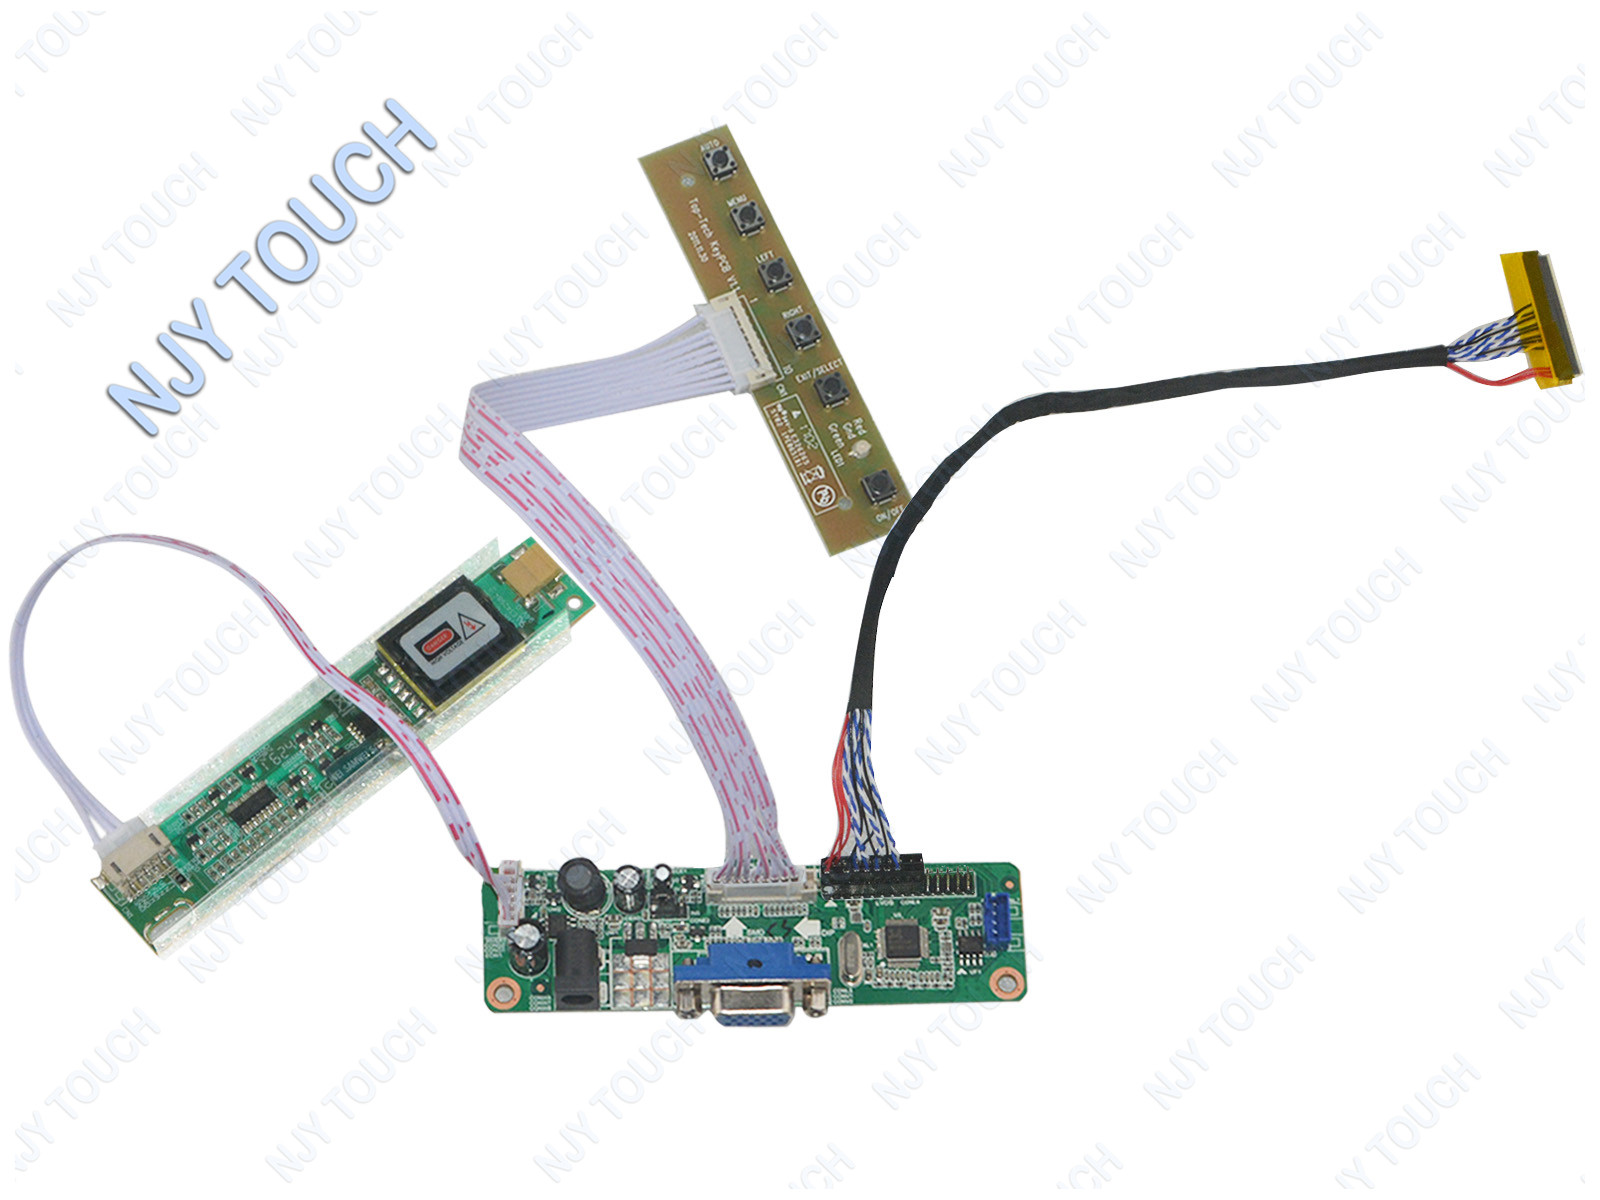 f945ff5d32ef5620 universal vga controller board kit driver lvds inverter for lcd LCD Monitor Schematic at readyjetset.co